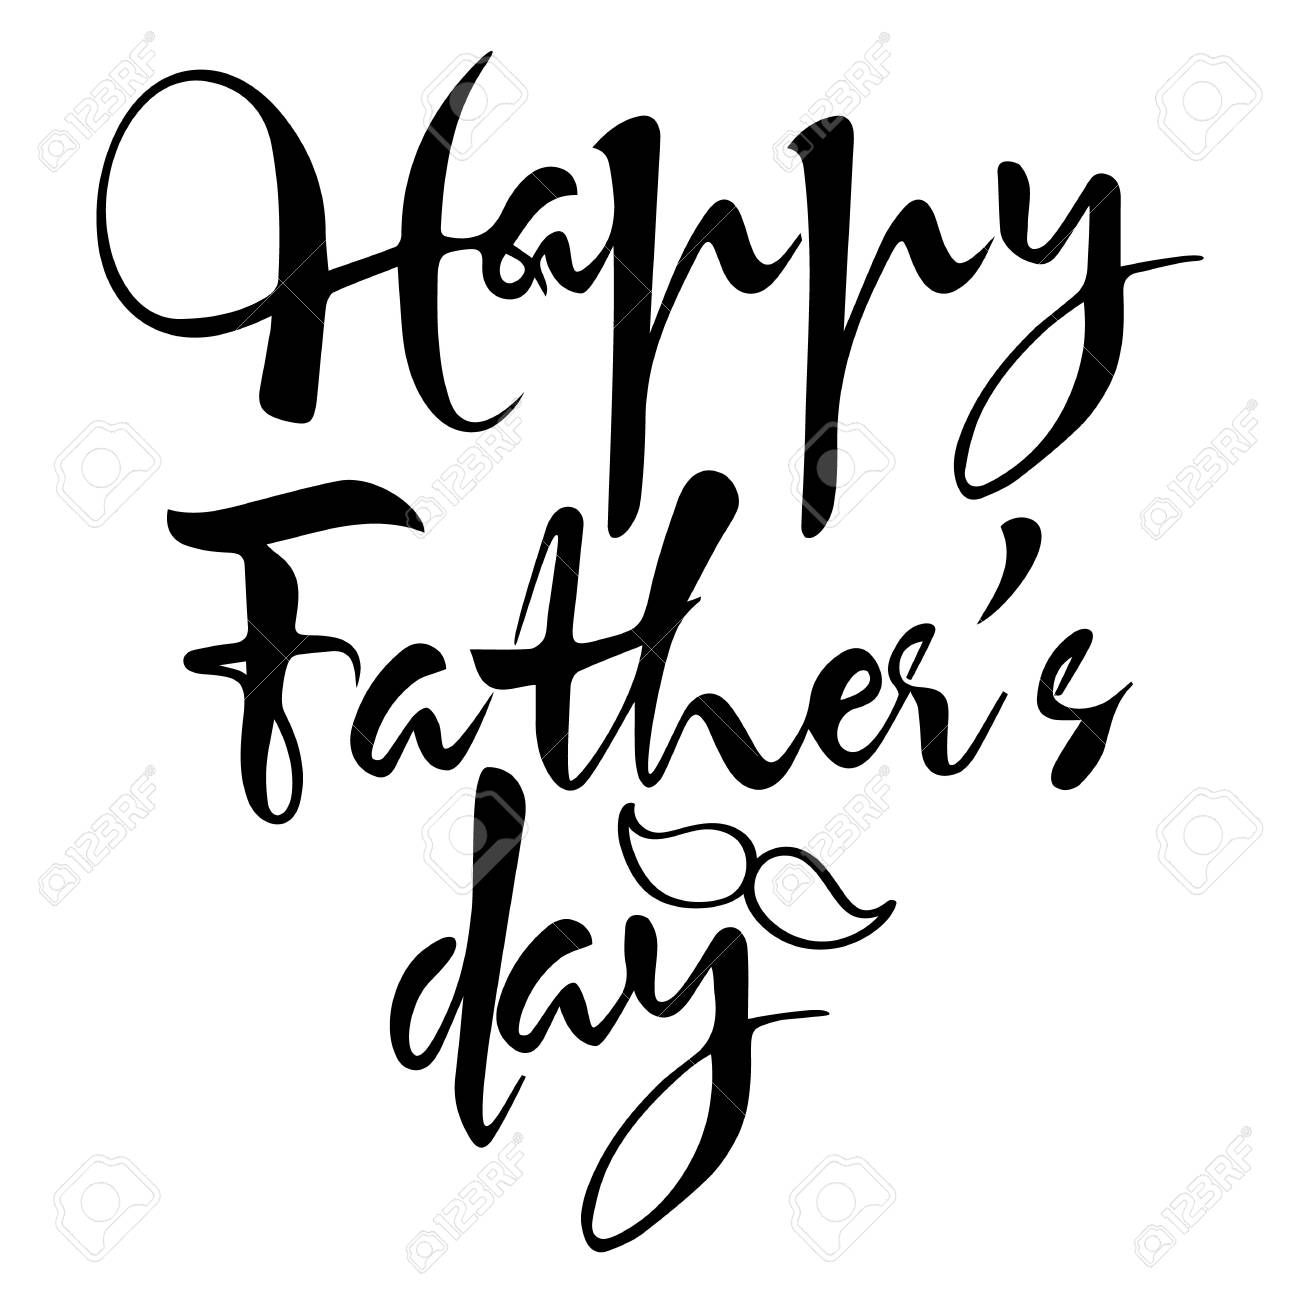 black and white vector composition happy father s day drawn rh 123rf com black and white vector art of famous people black and white christmas vector art